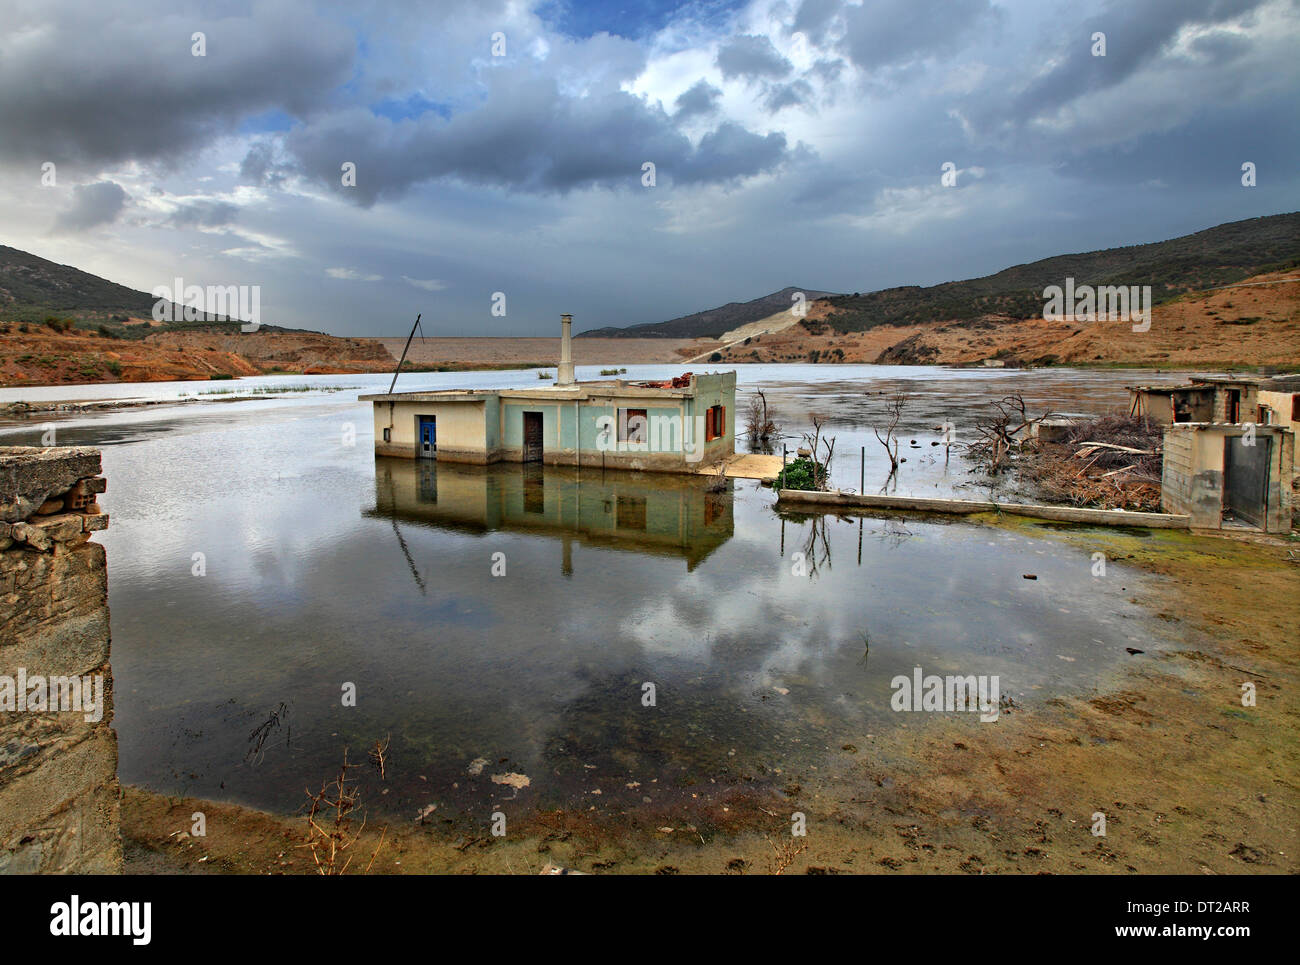 At the sinking part of Sfendyli village in the artificial lake created by the dam of Aposelemis, Heraklion, Crete, Greece - Stock Image